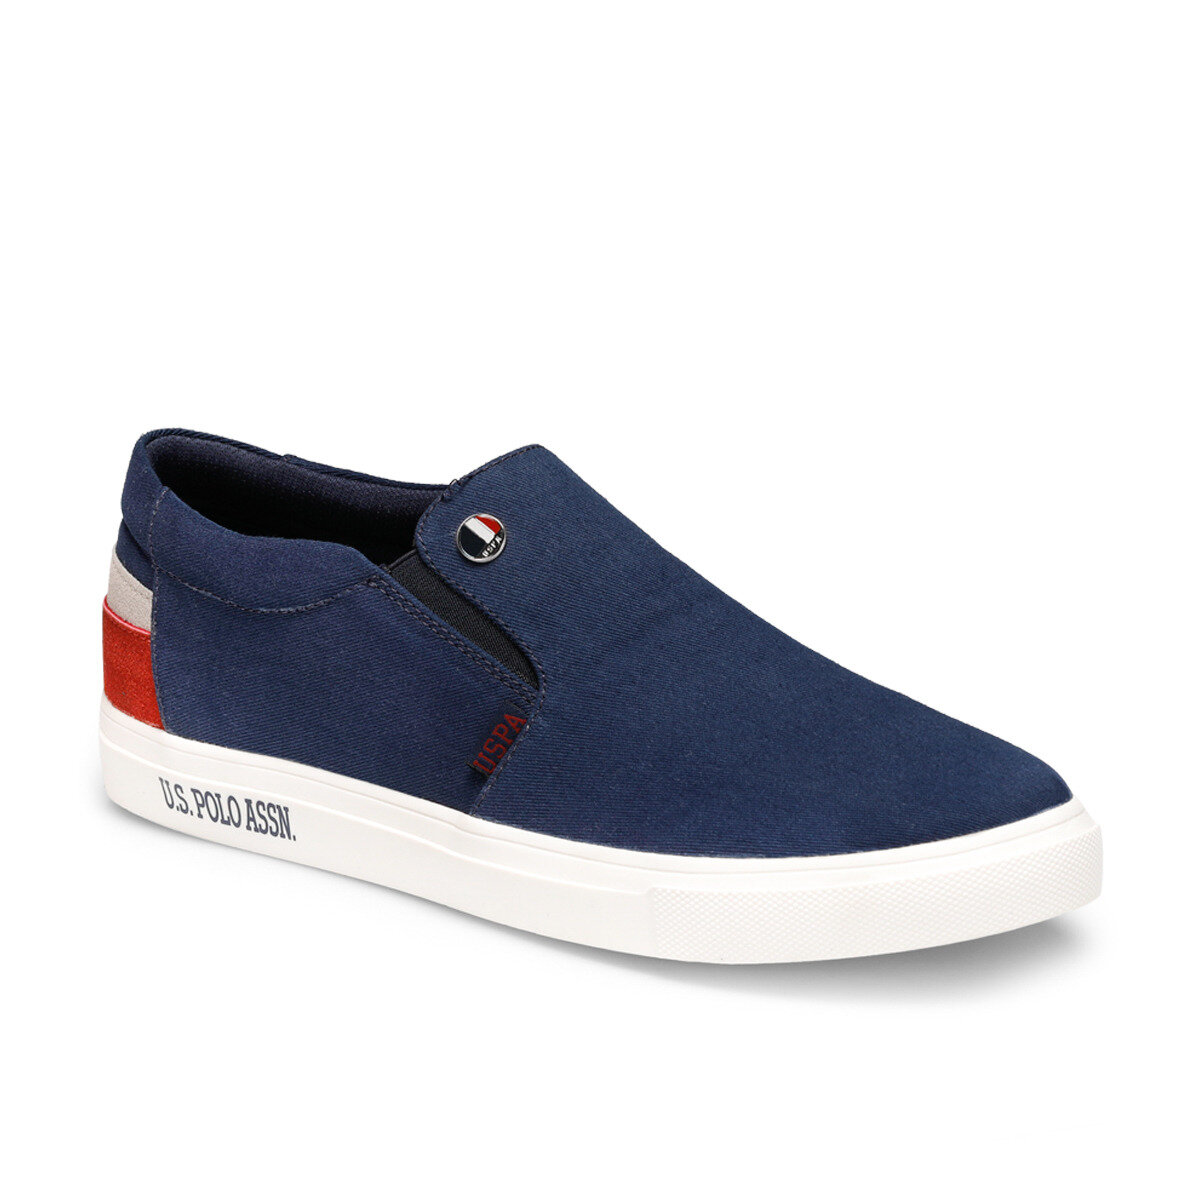 FLO Navy White Men Casual Shoes Fashion Men Shoes Loafers Moccasins Slip On Men's Flats Male Driving Shoes U.S. POLO ASSN. LOVONO